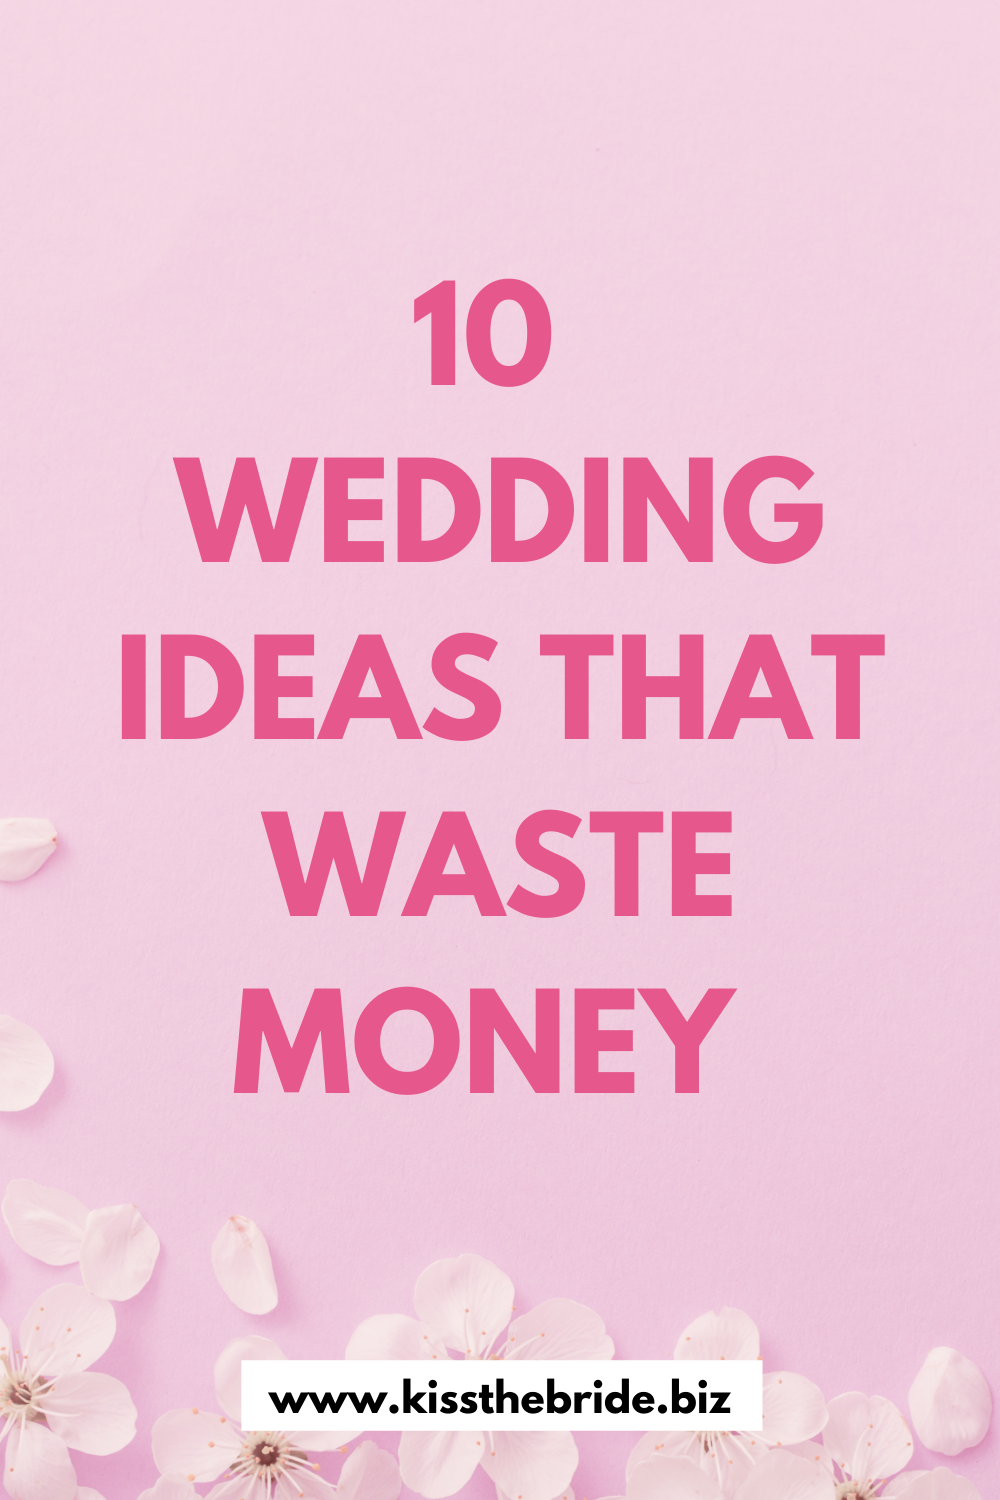 Wedding ideas that are no good